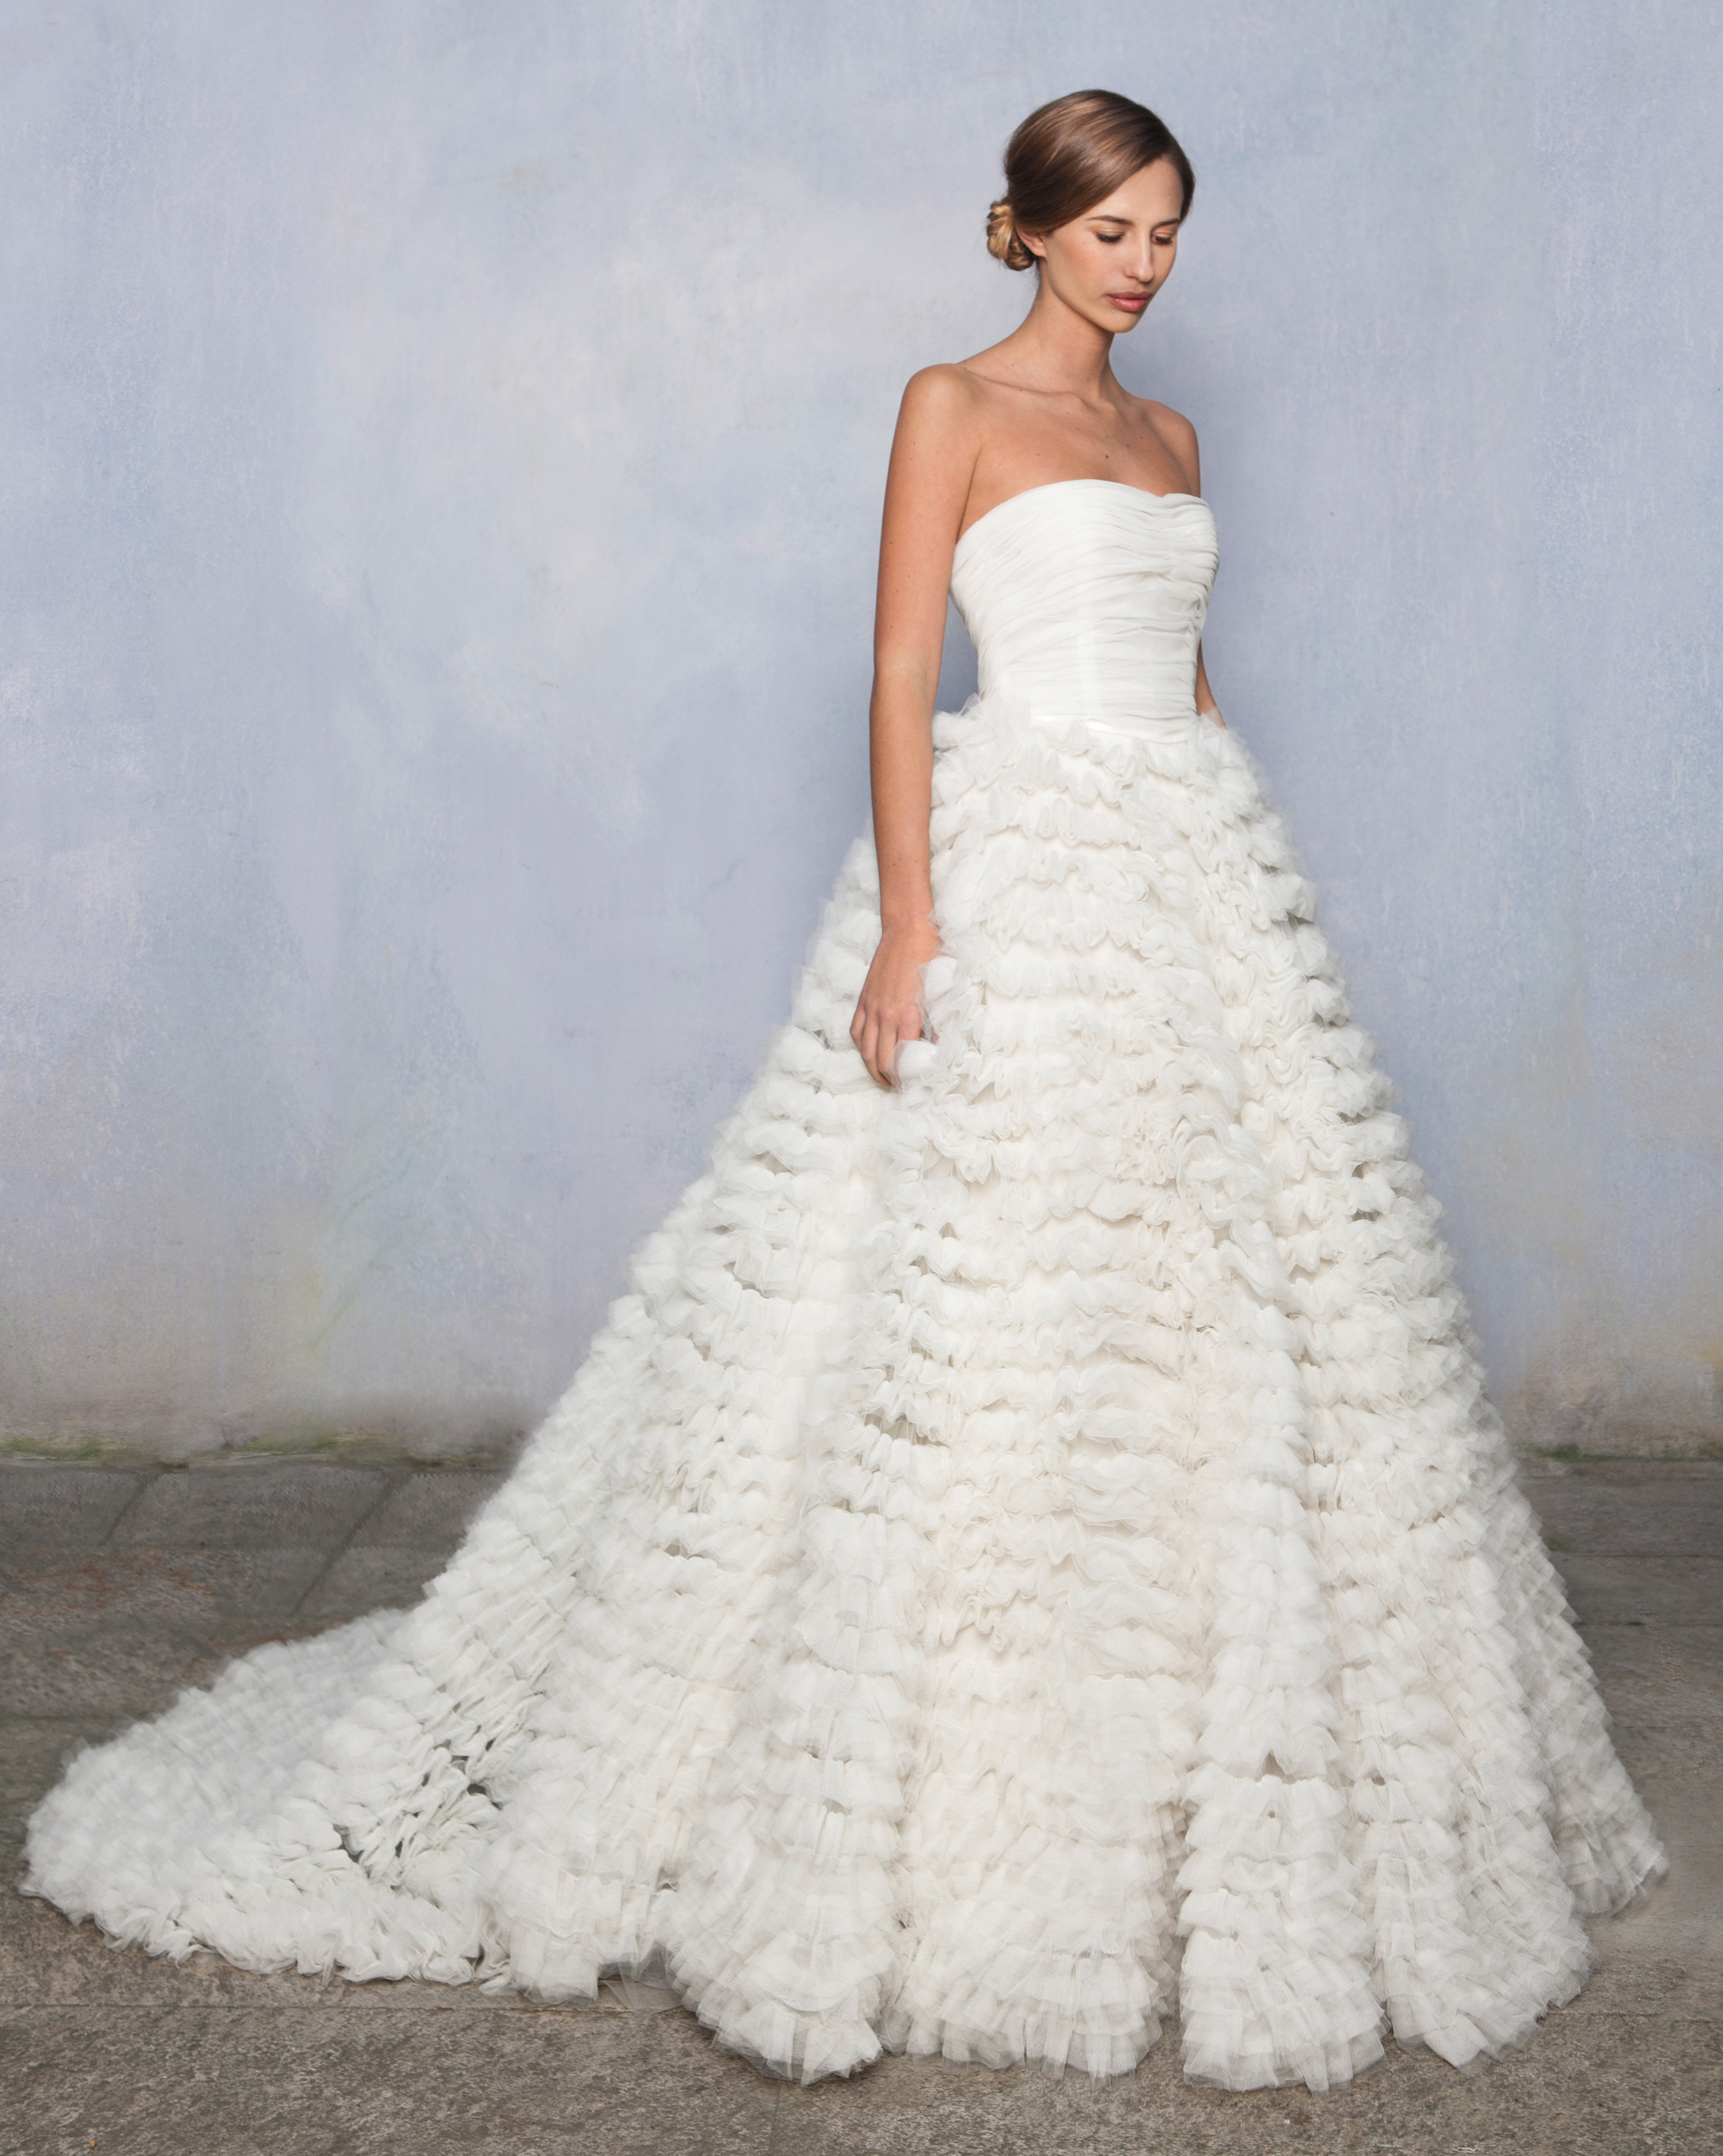 Modern Fairy Tale: Luisa Beccaria Dress